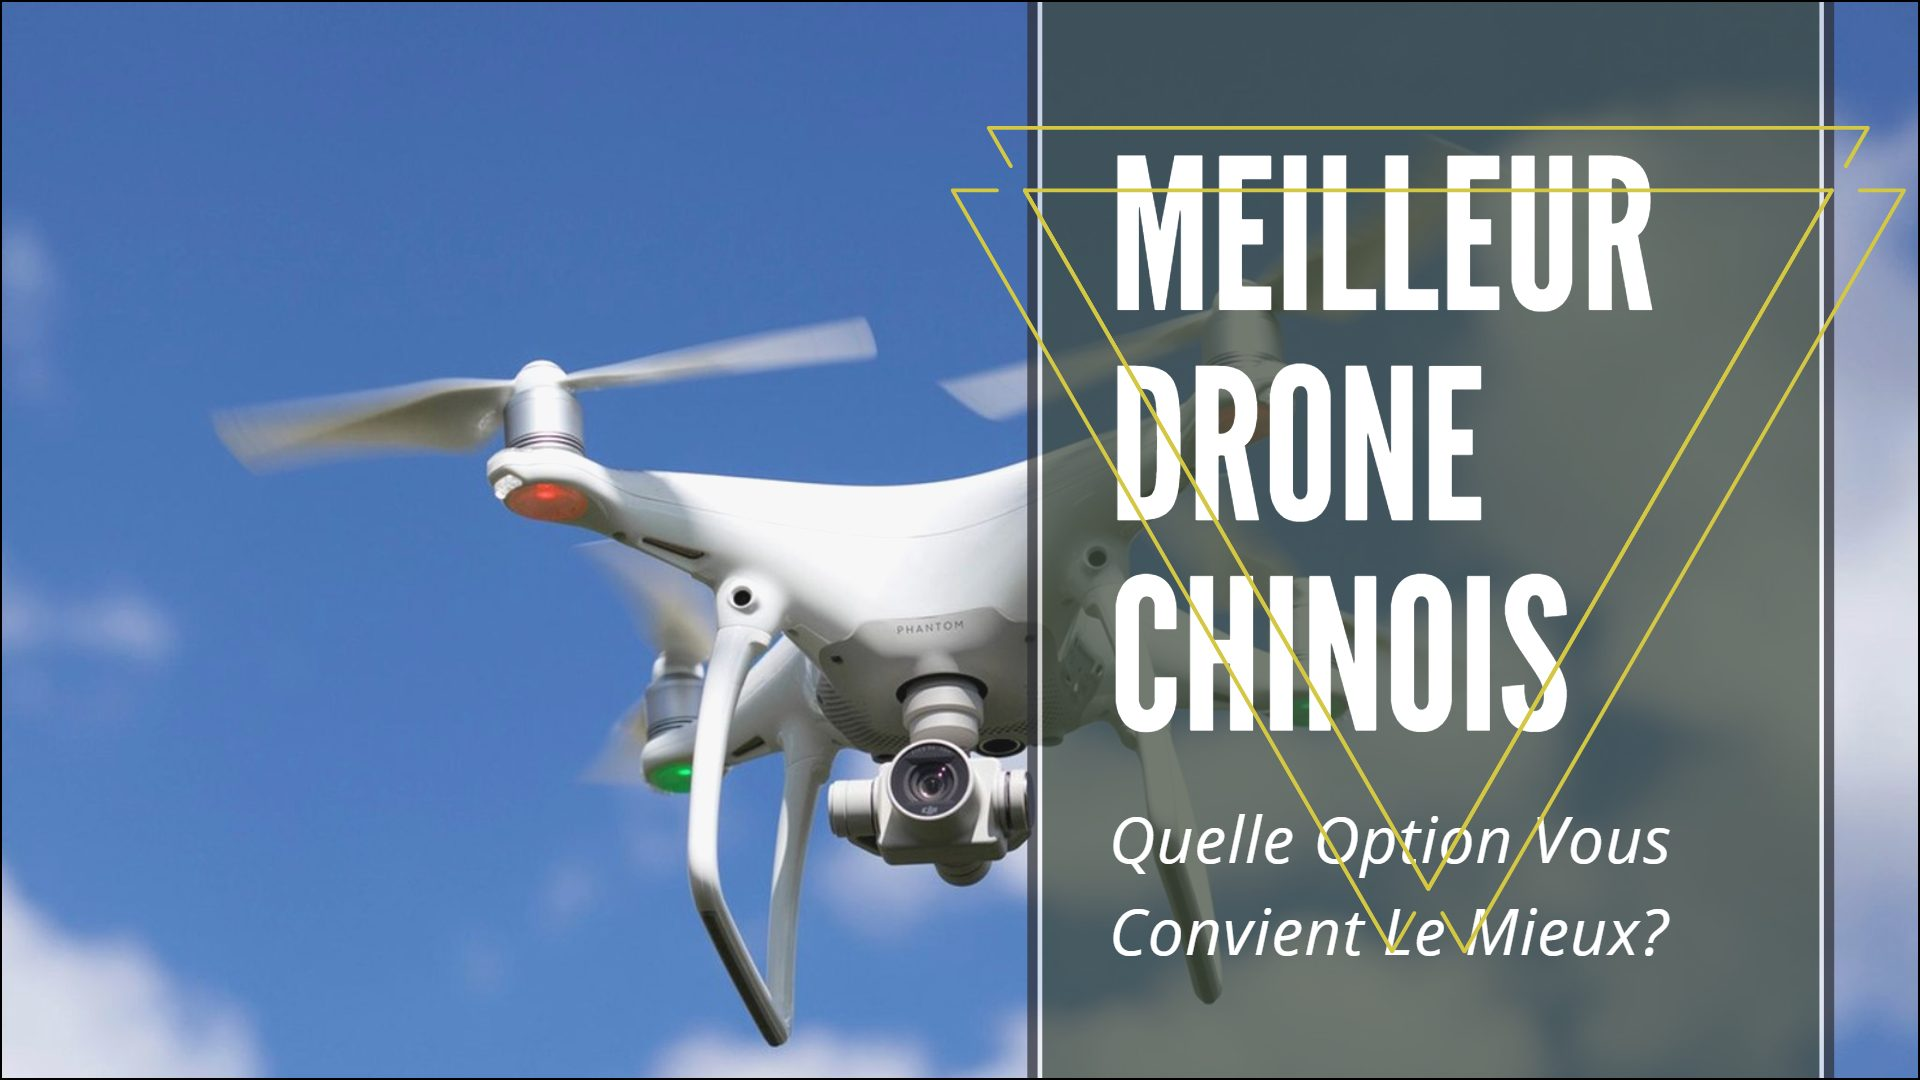 meilleur drone chinois